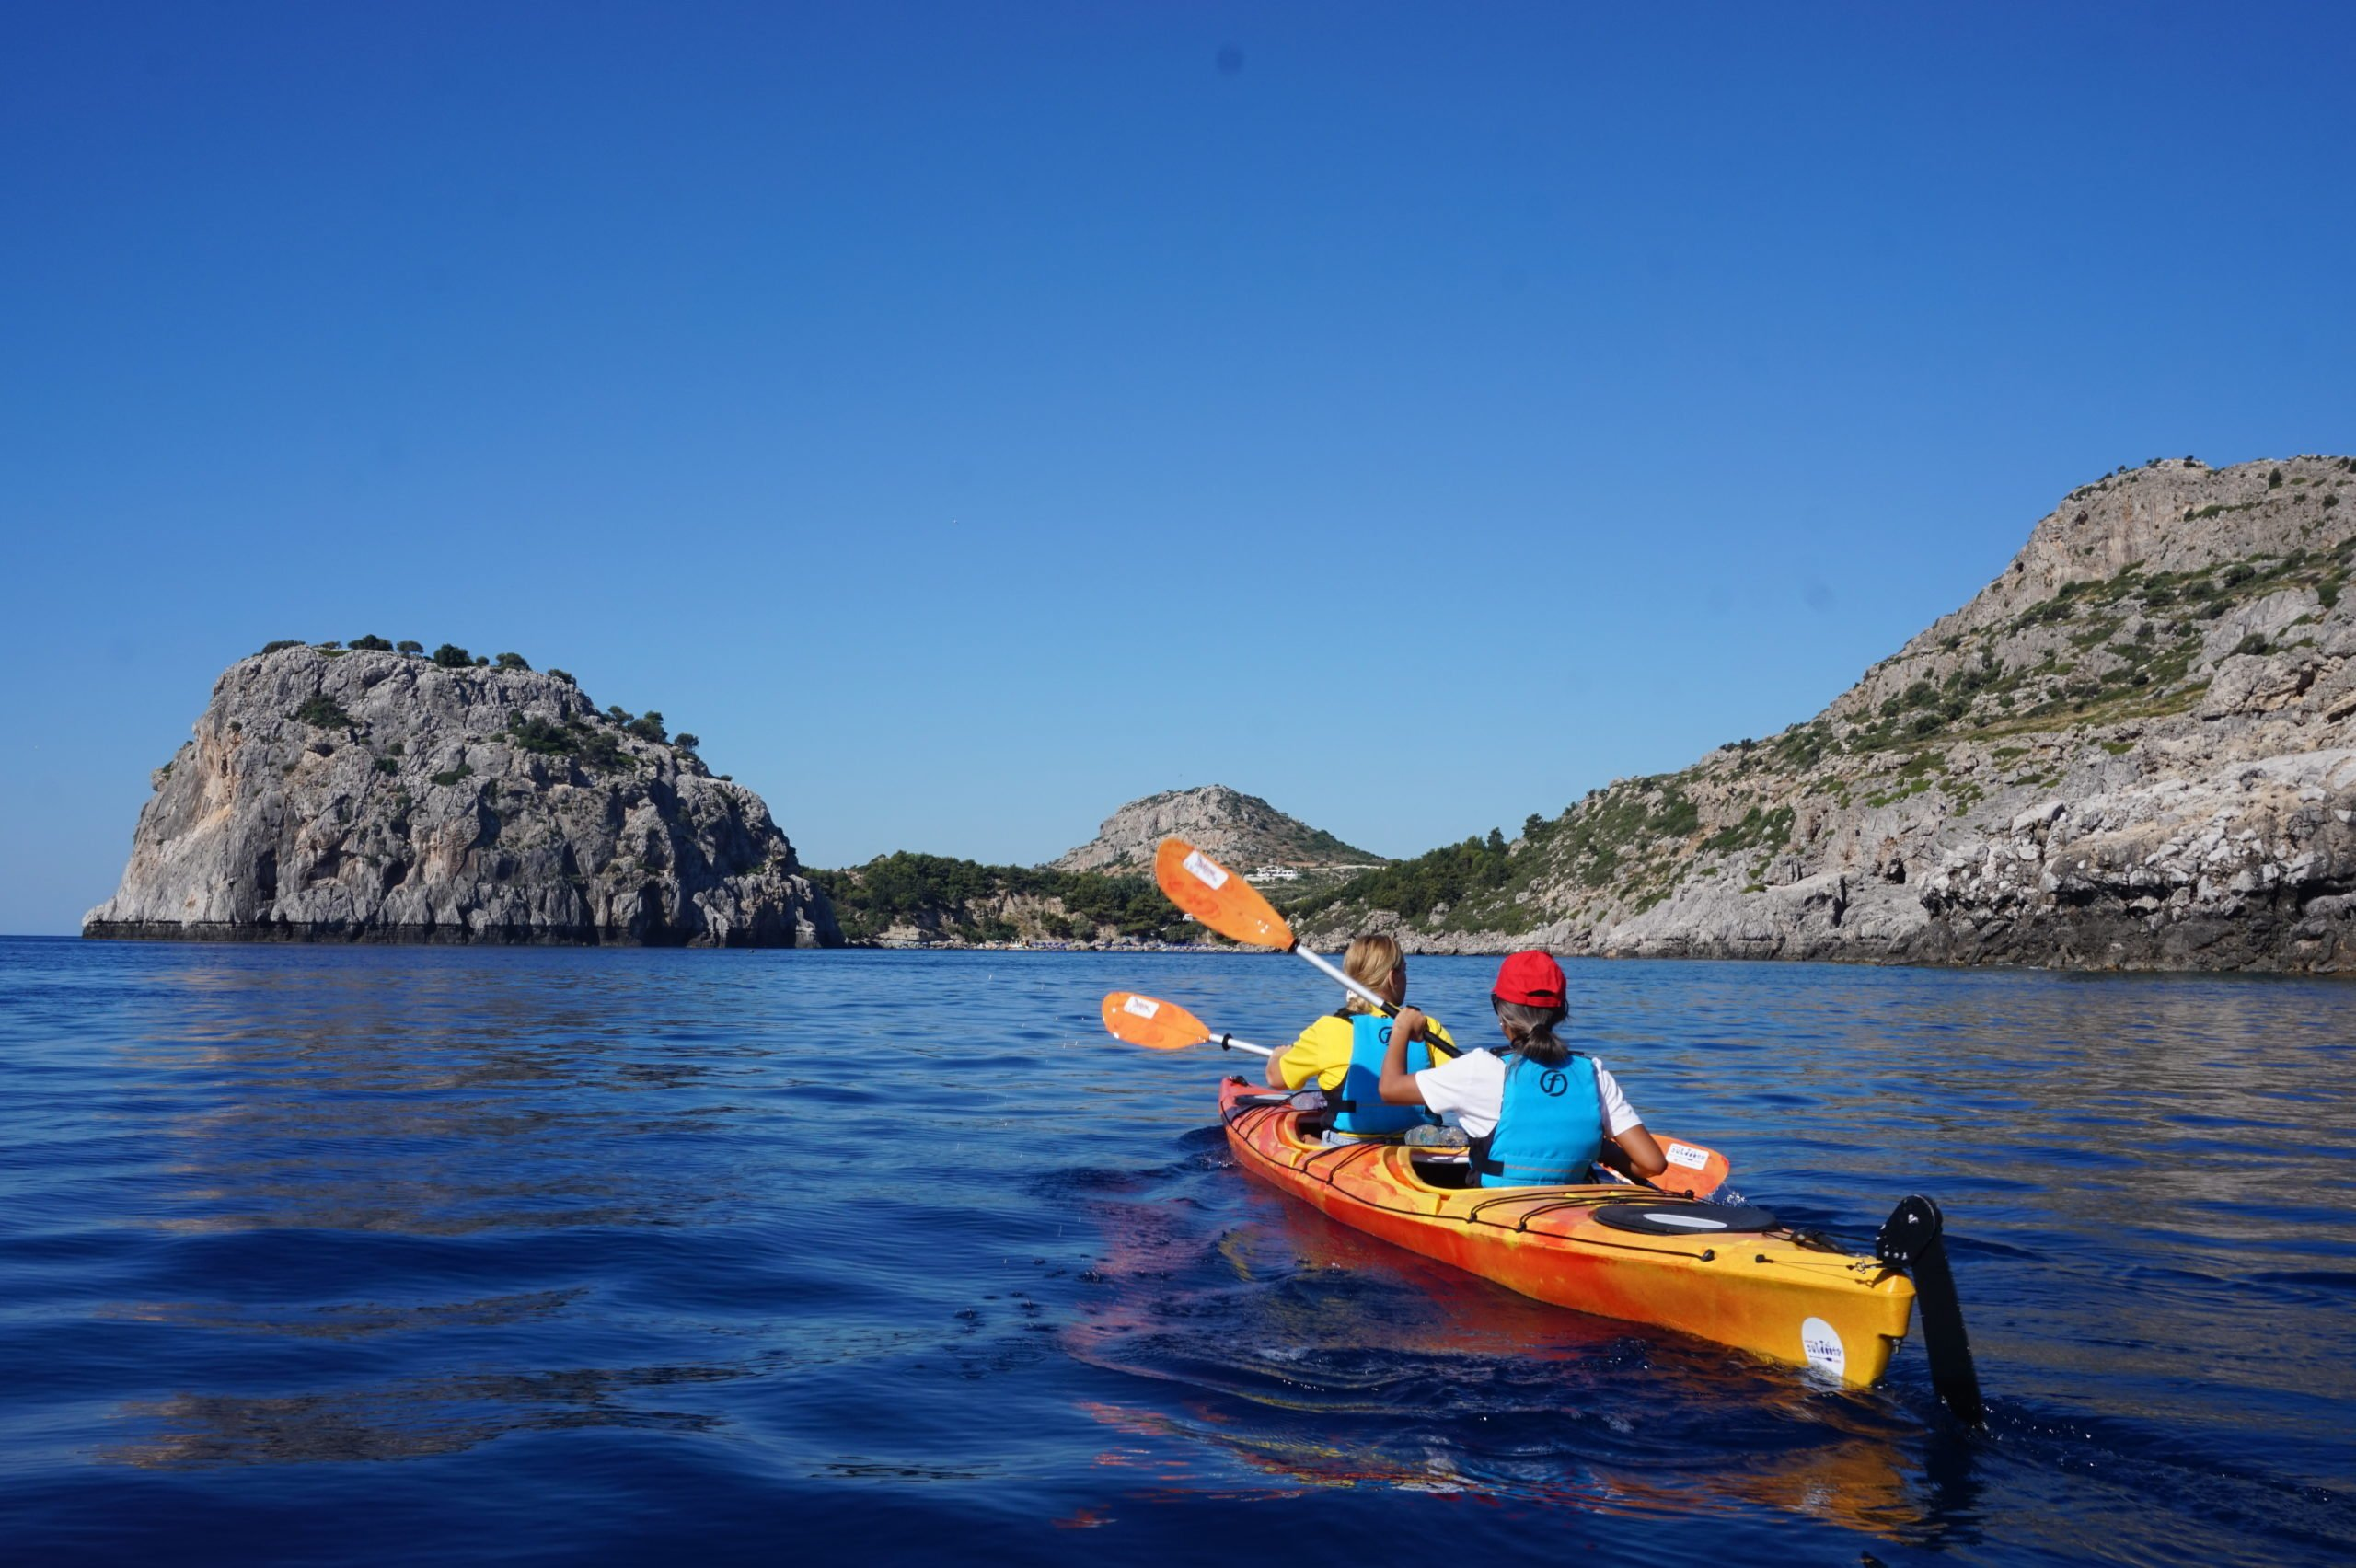 Paddle Your Sea Kayak Along Stretches Of Unique Bays And Breathtaking Rock Formations In Our Sea Kayak Half Day Tour